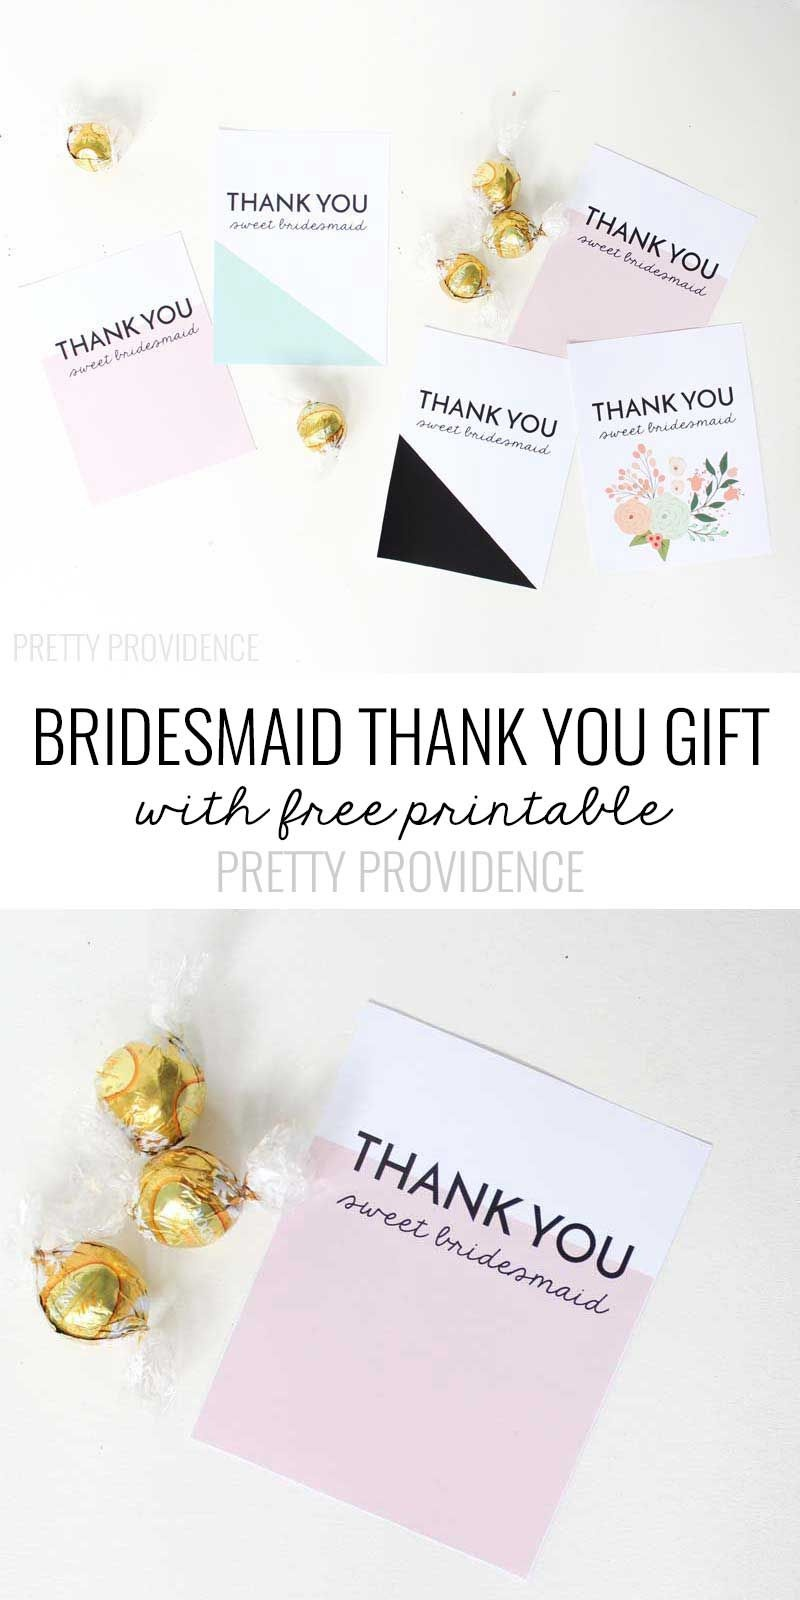 Bridesmaid Thank You Gift Printable   Michaels Weddings   Bridesmaid - Free Personalized Thank You Cards Printable